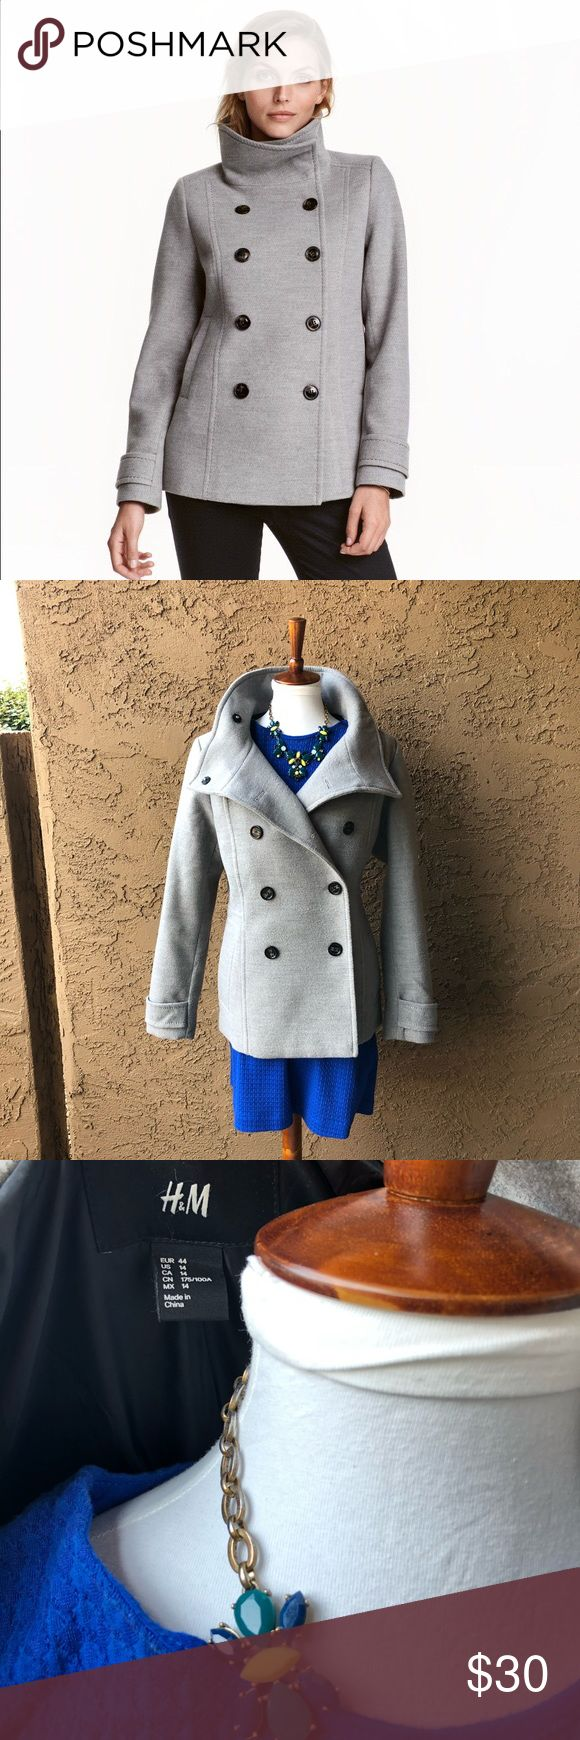 H&M grey pea coat size 14 Purchased from H&M, worn one season. H&M Jackets & Coats Pea Coats